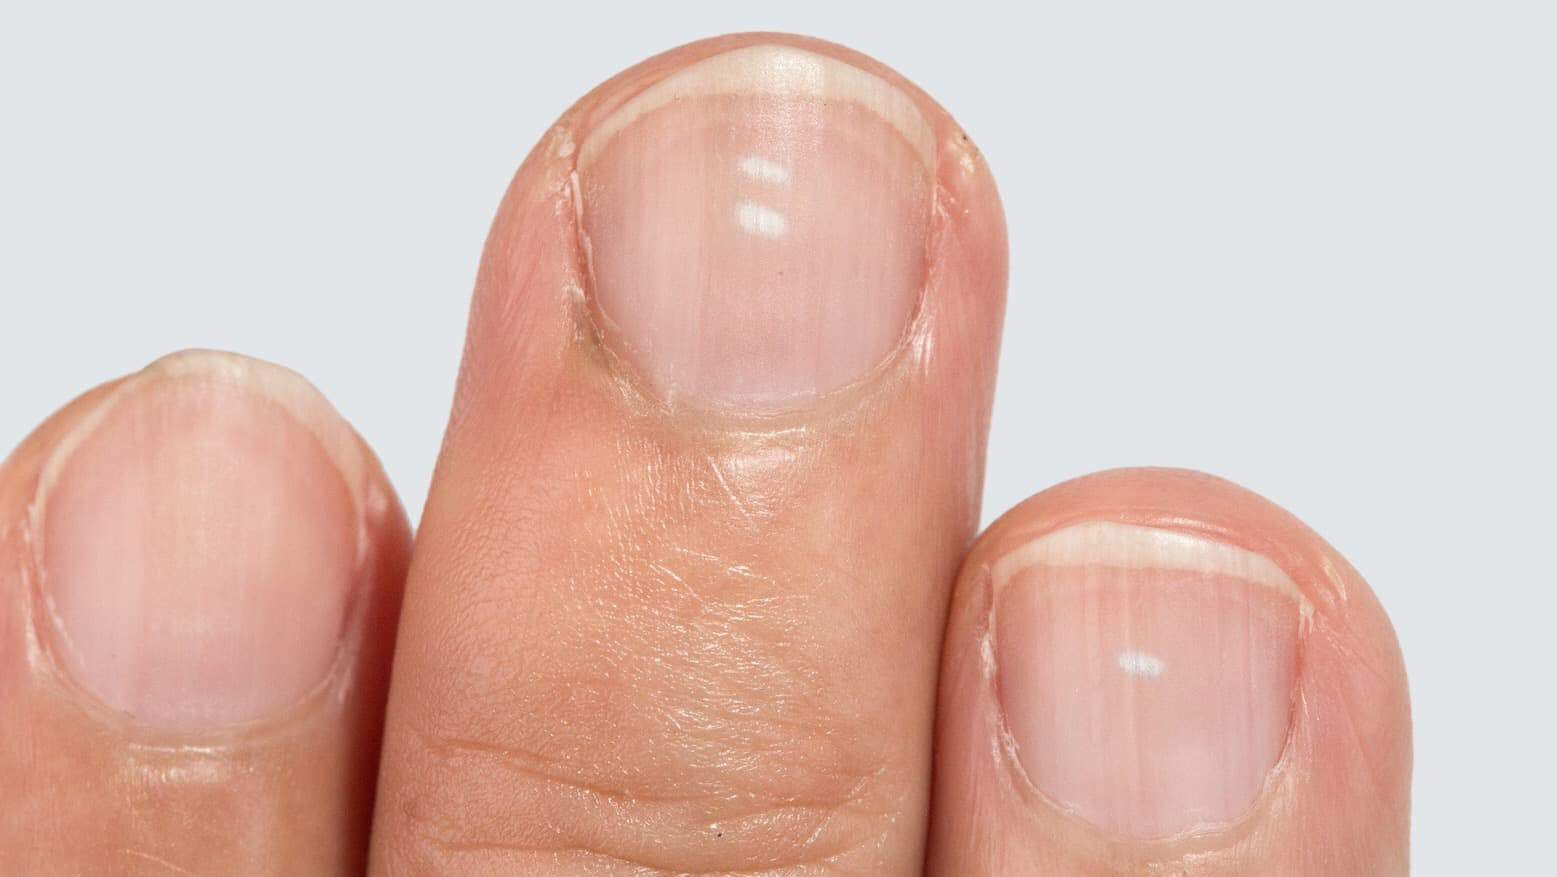 Researchers Explain What Your Fingernails Can Tell You About Your Health